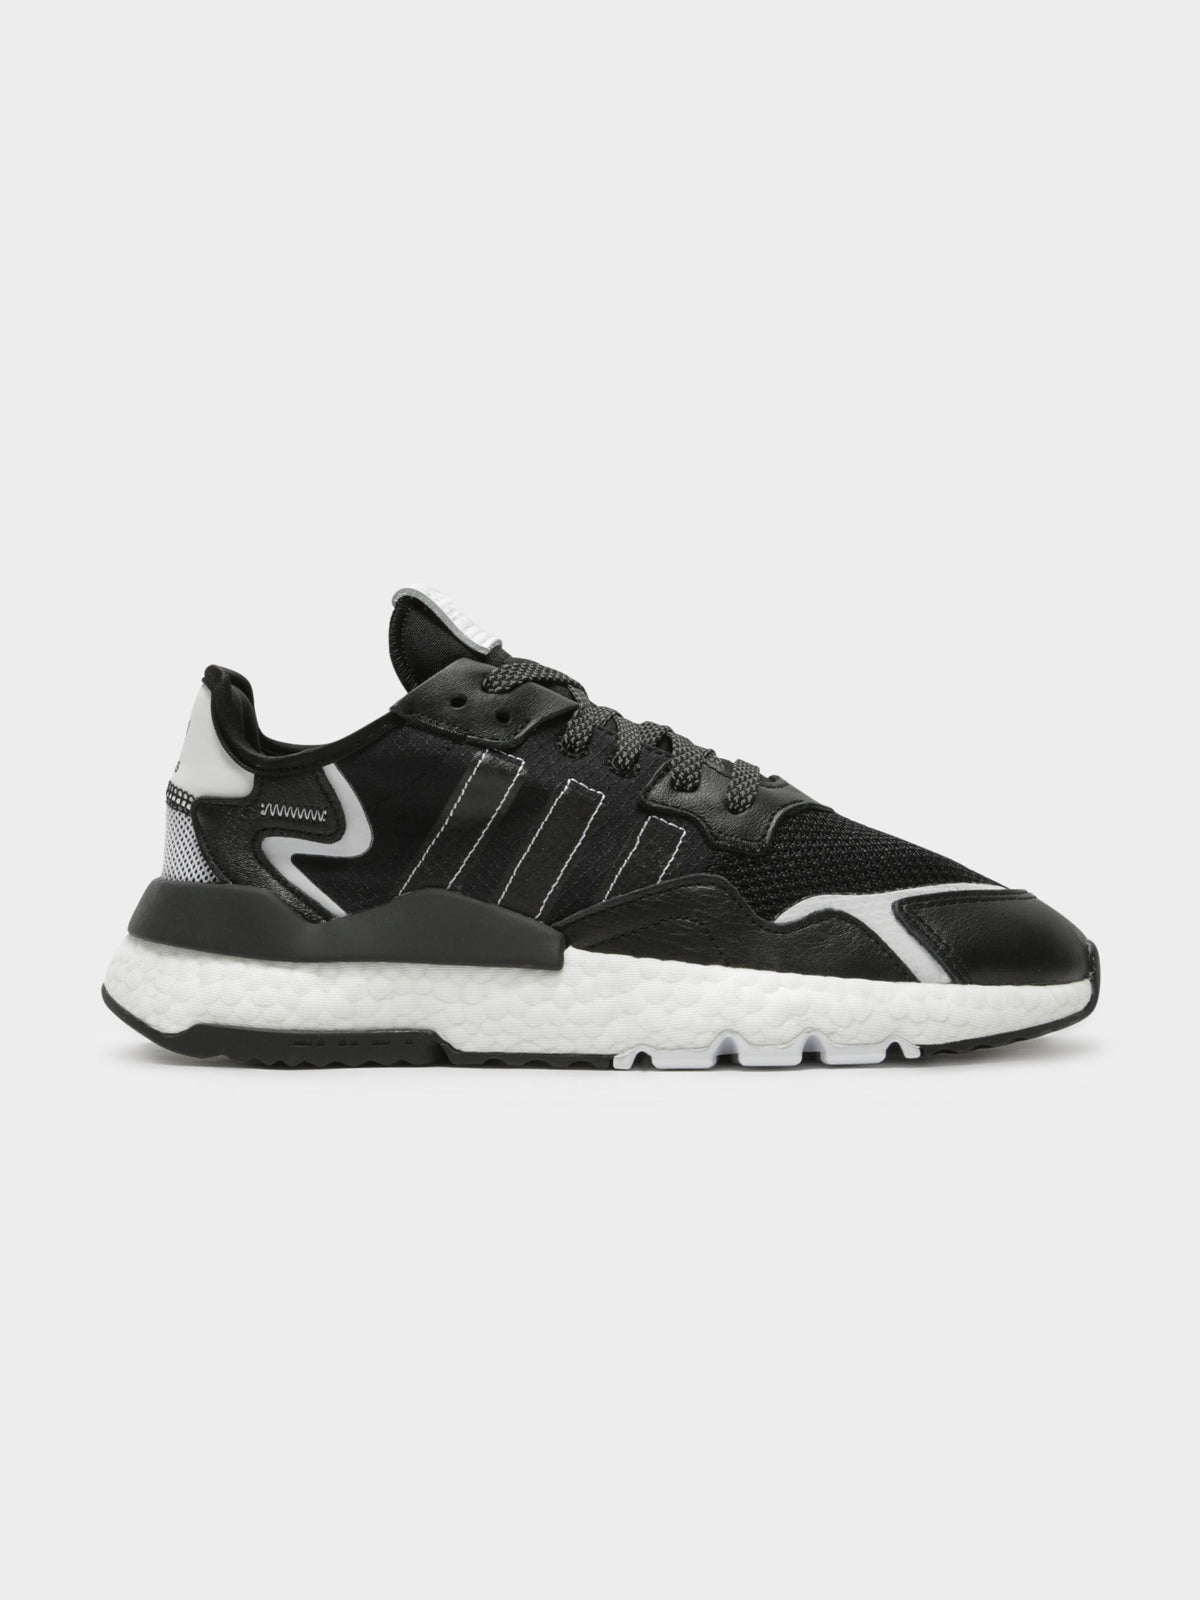 Mens Nite Jogger Sneakers in Black & White